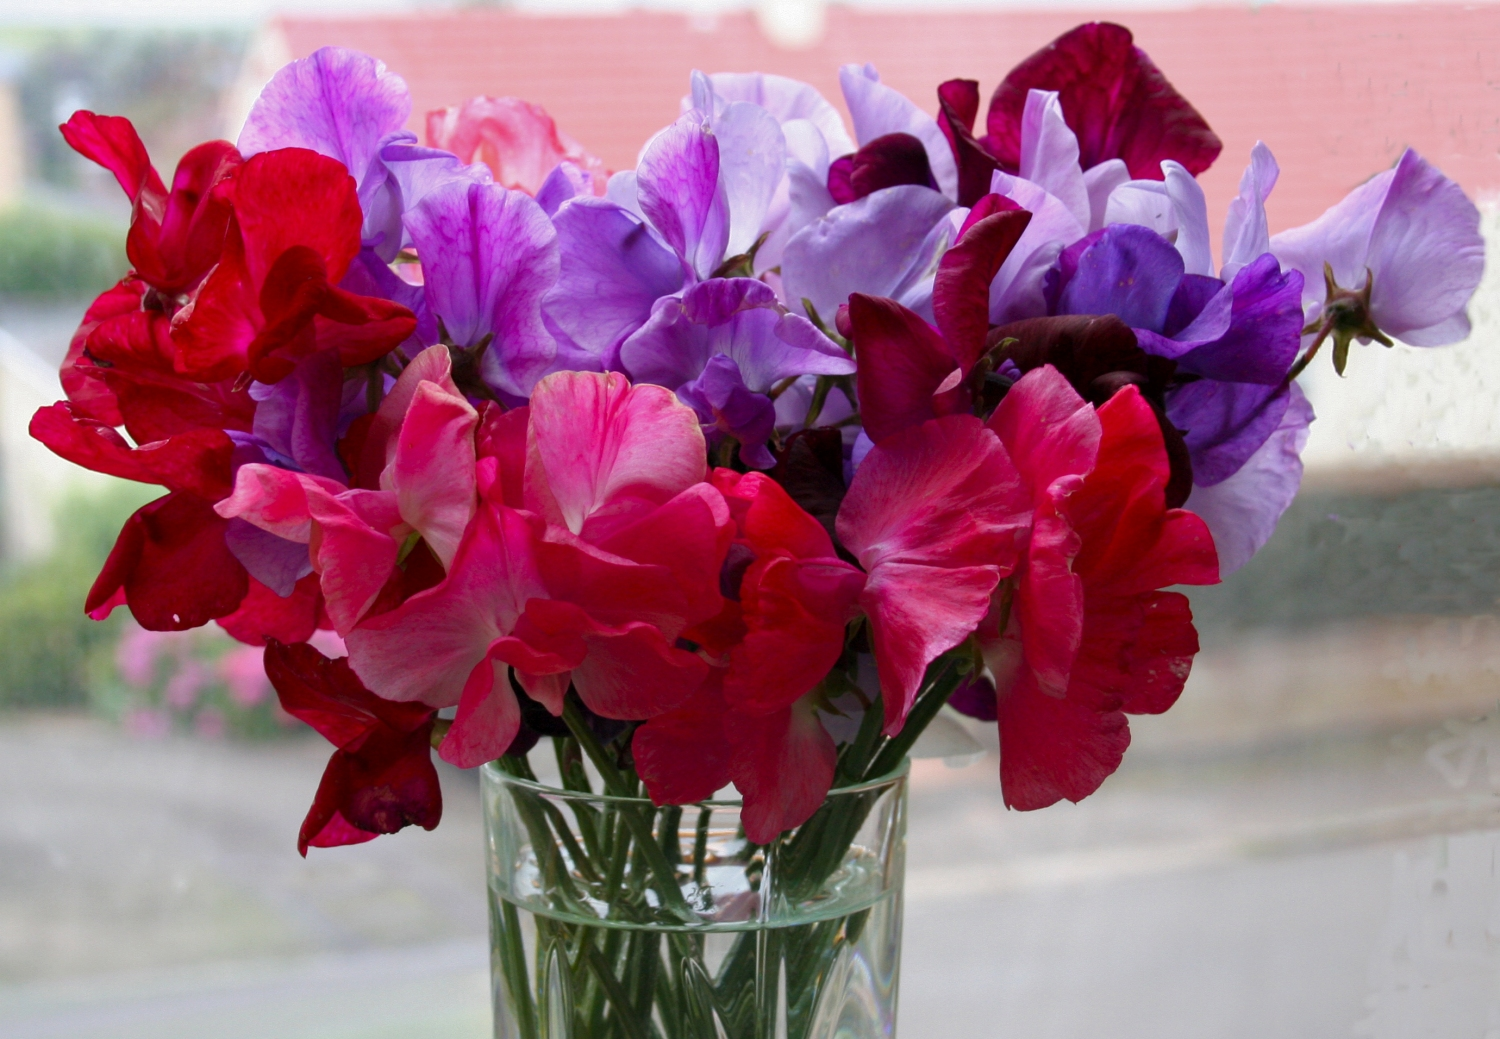 1000 images about Sweetpeas on Pinterest